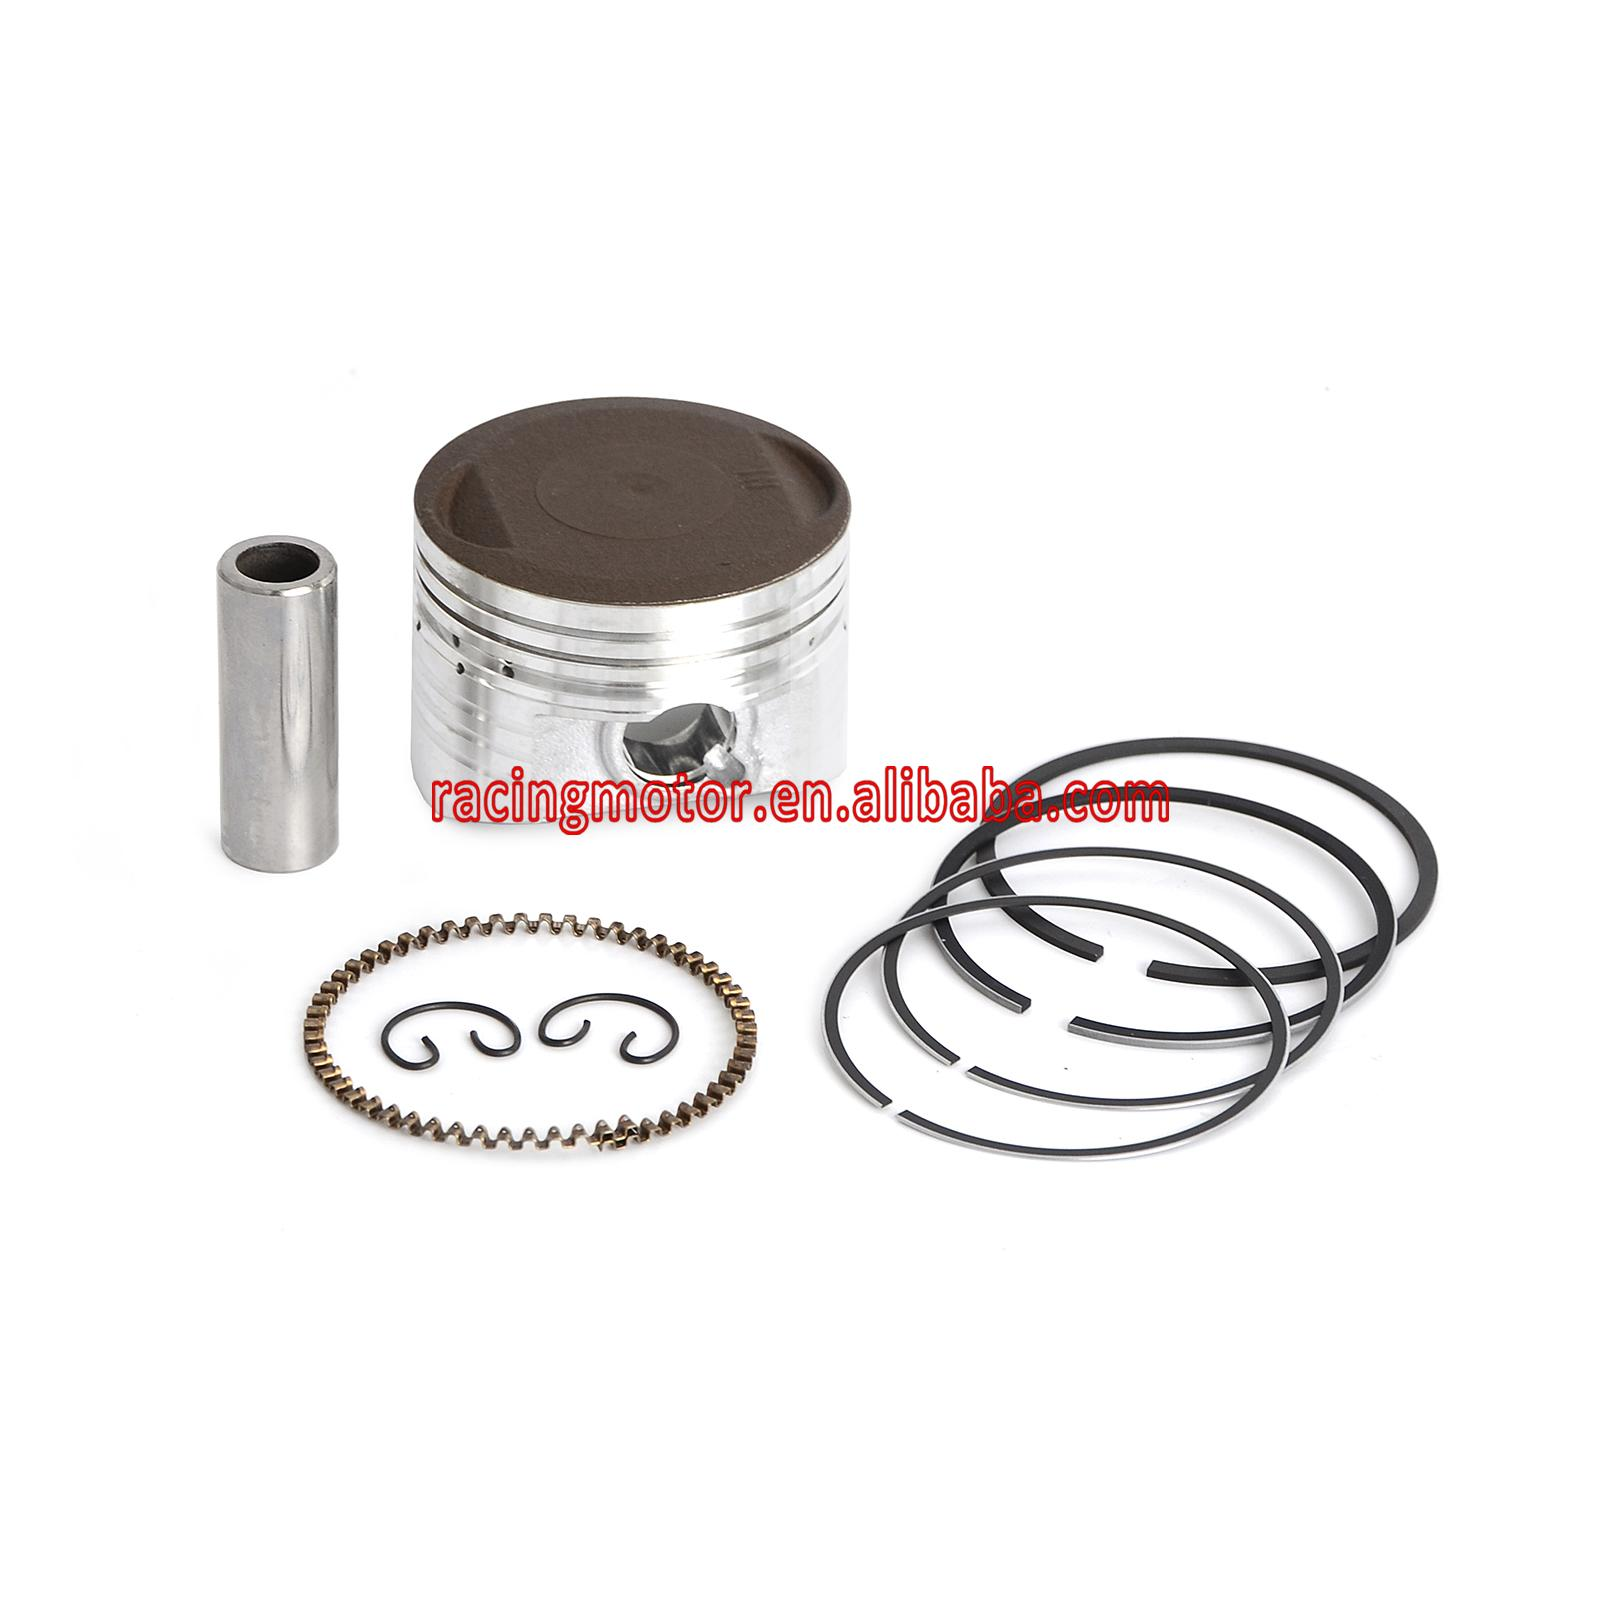 Motorcycle Engine Parts Std Cylinder Bore Size 55mm: Motorcycle Engine Parts STD Cylinder Bore Size 56.5mm